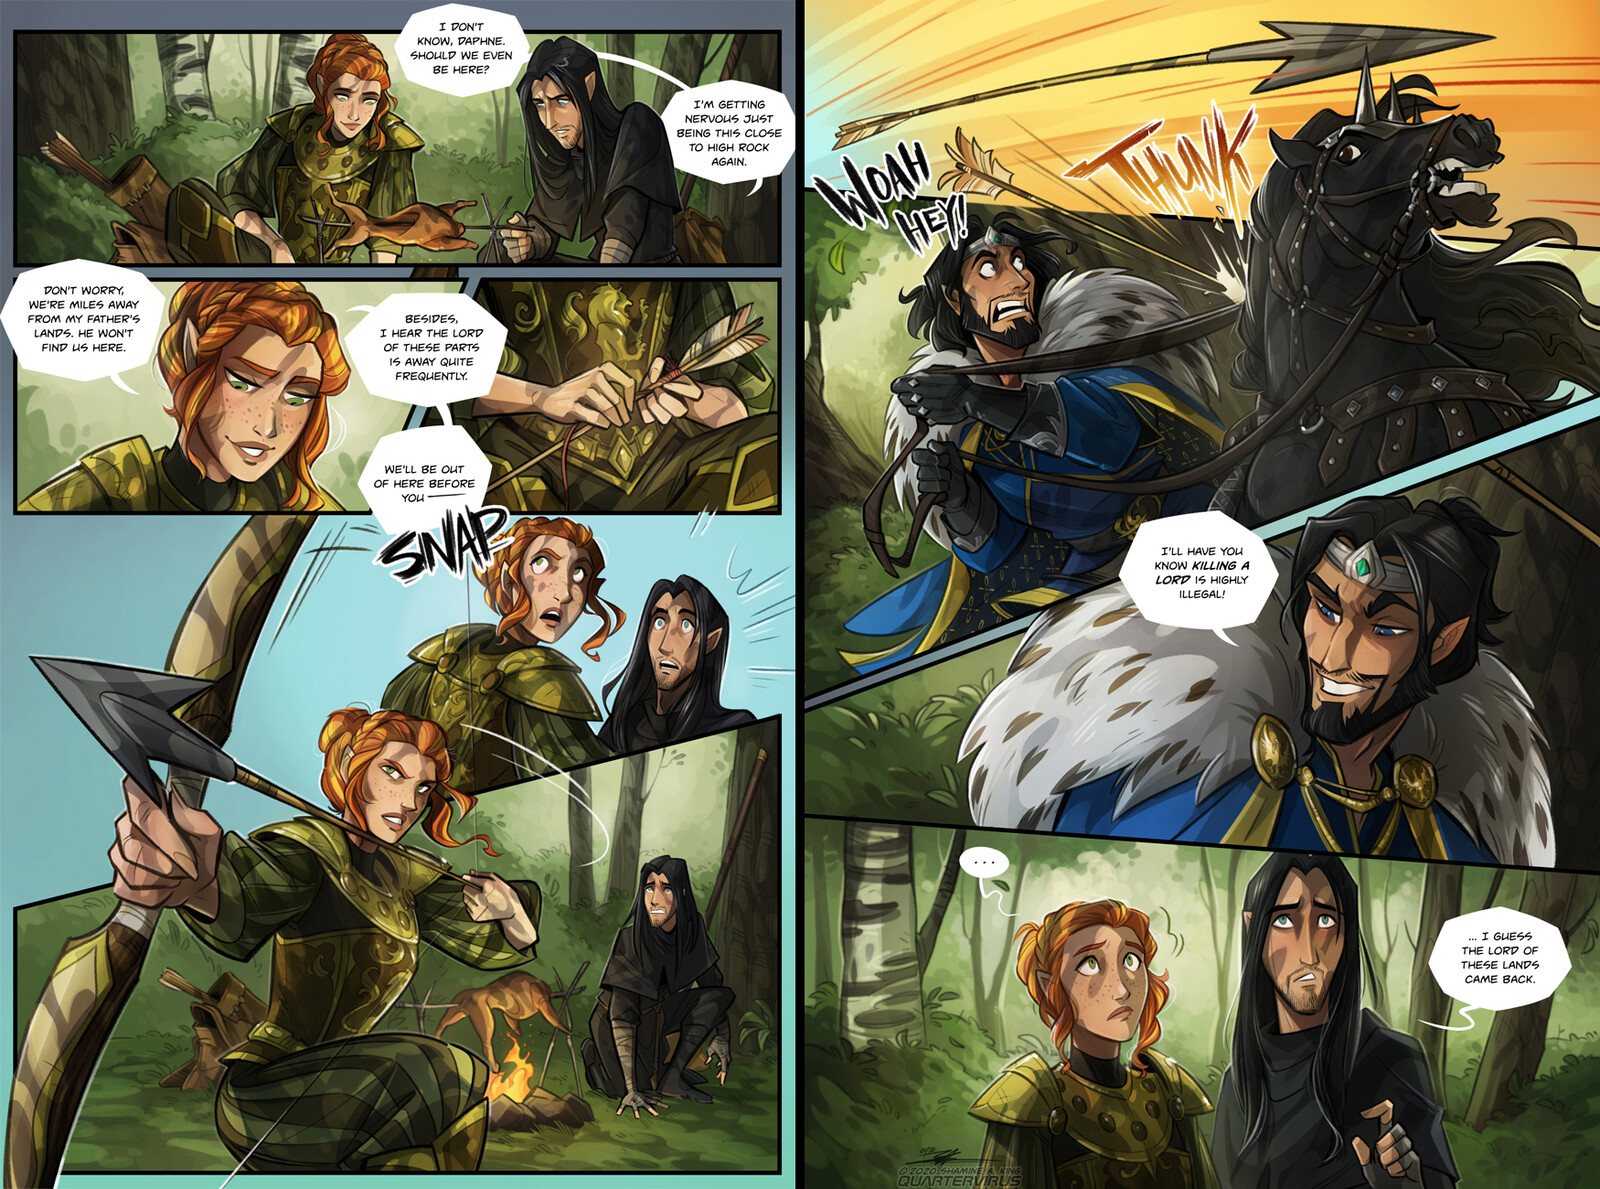 Jaris-the-Breton now exists on EU, along with Jarys-the-Dunmer. Tamriel won't know what hit it  That one time Tristane and Daphne crossed paths with Jaris... and almost killed him in the process.